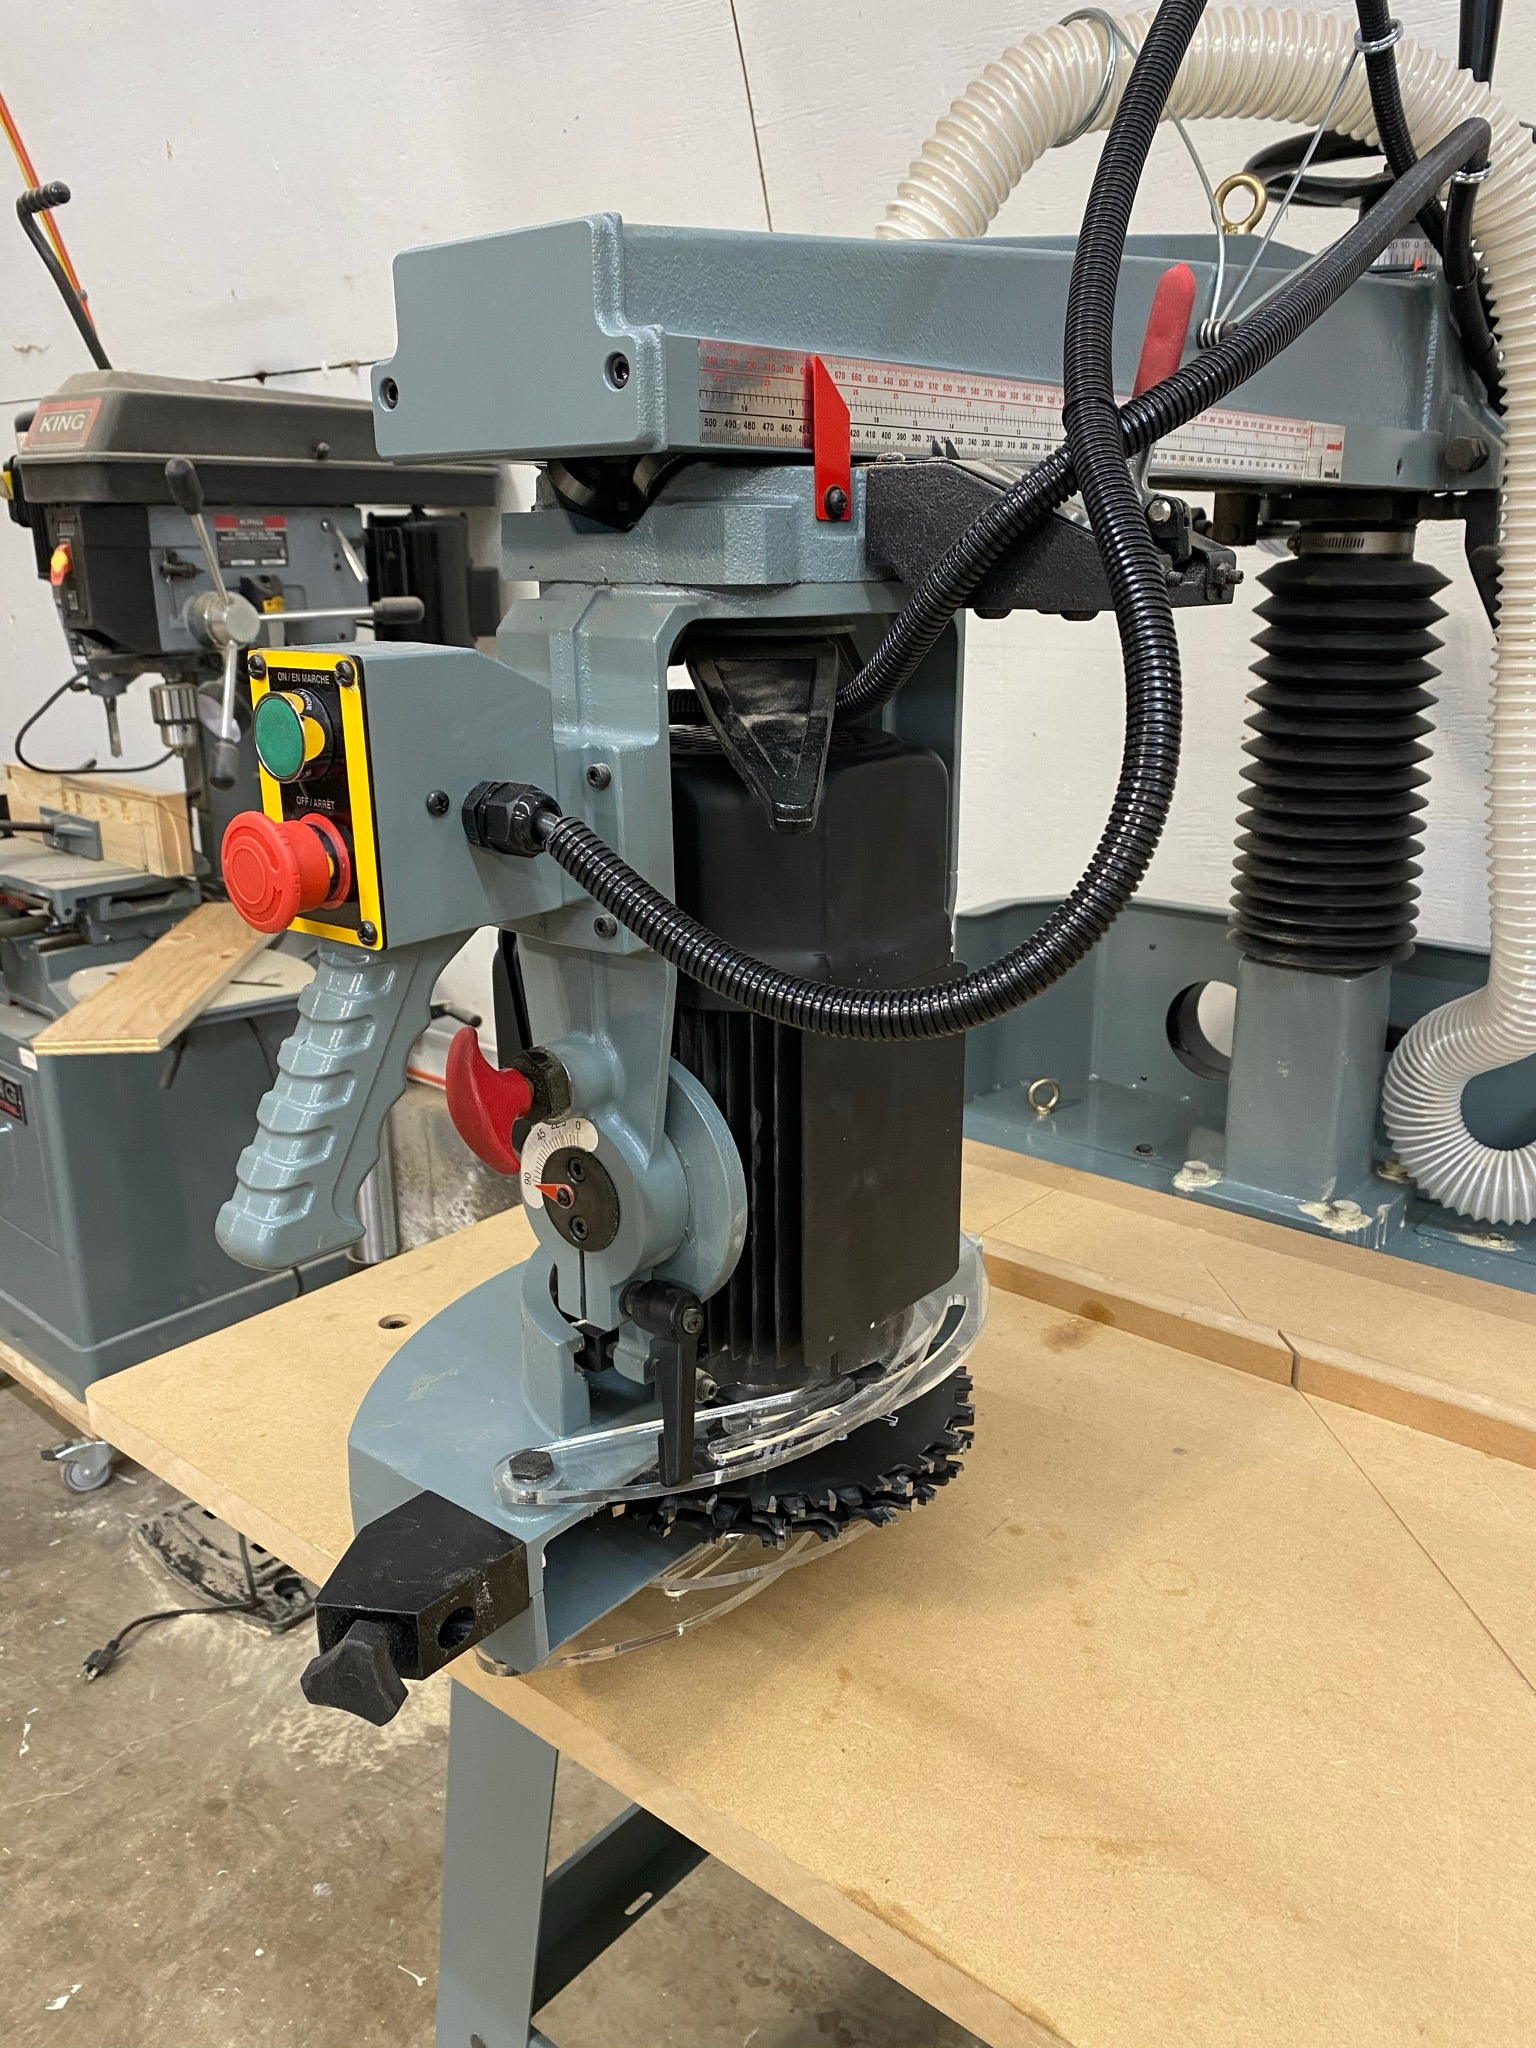 Radial Arm Saw extended